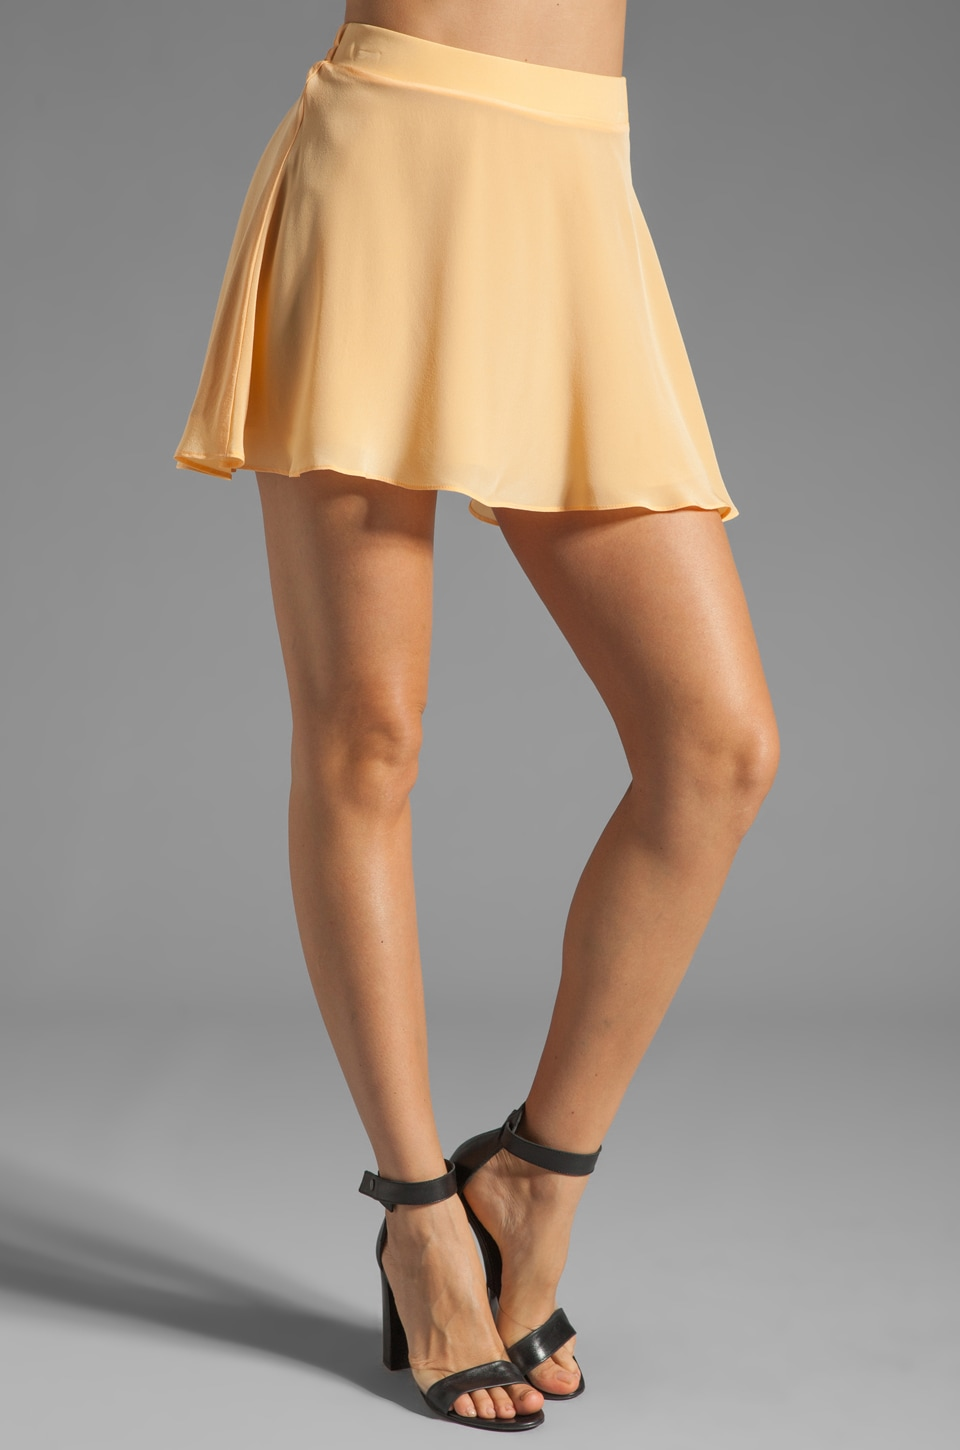 Naven Circle Skirt in Orange Sherbet